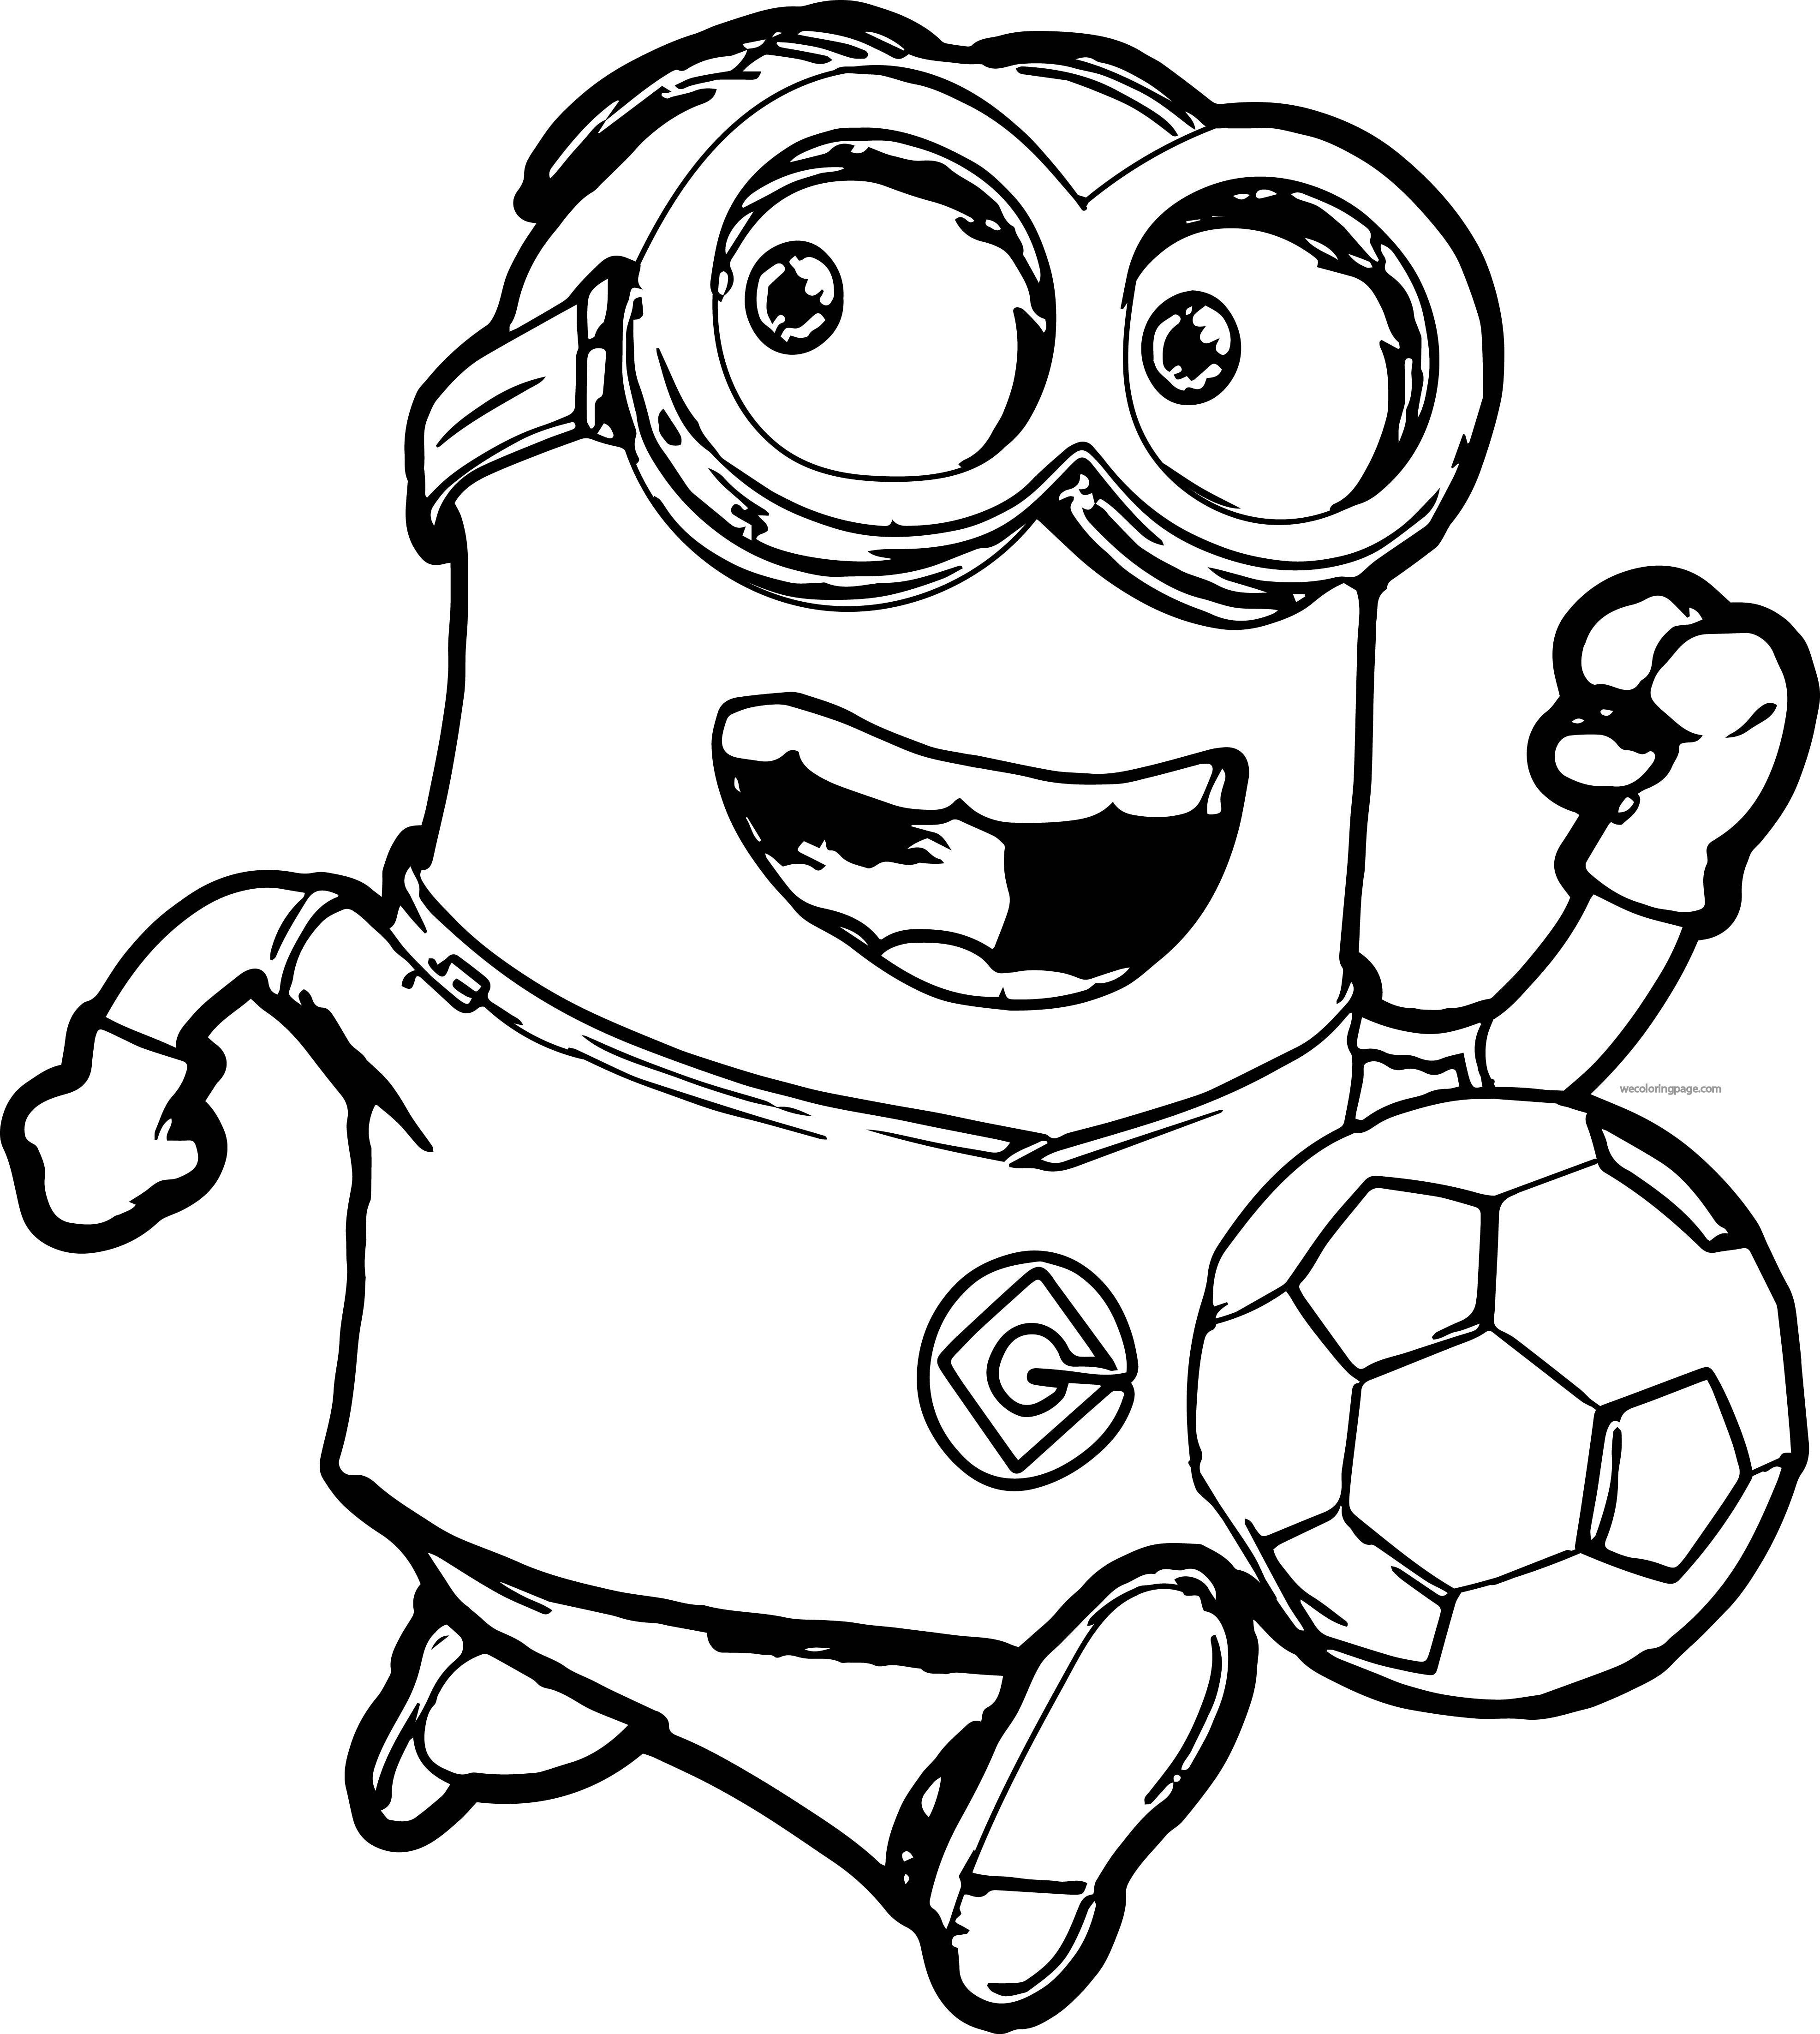 printable minions minion coloring pages best coloring pages for kids minions printable